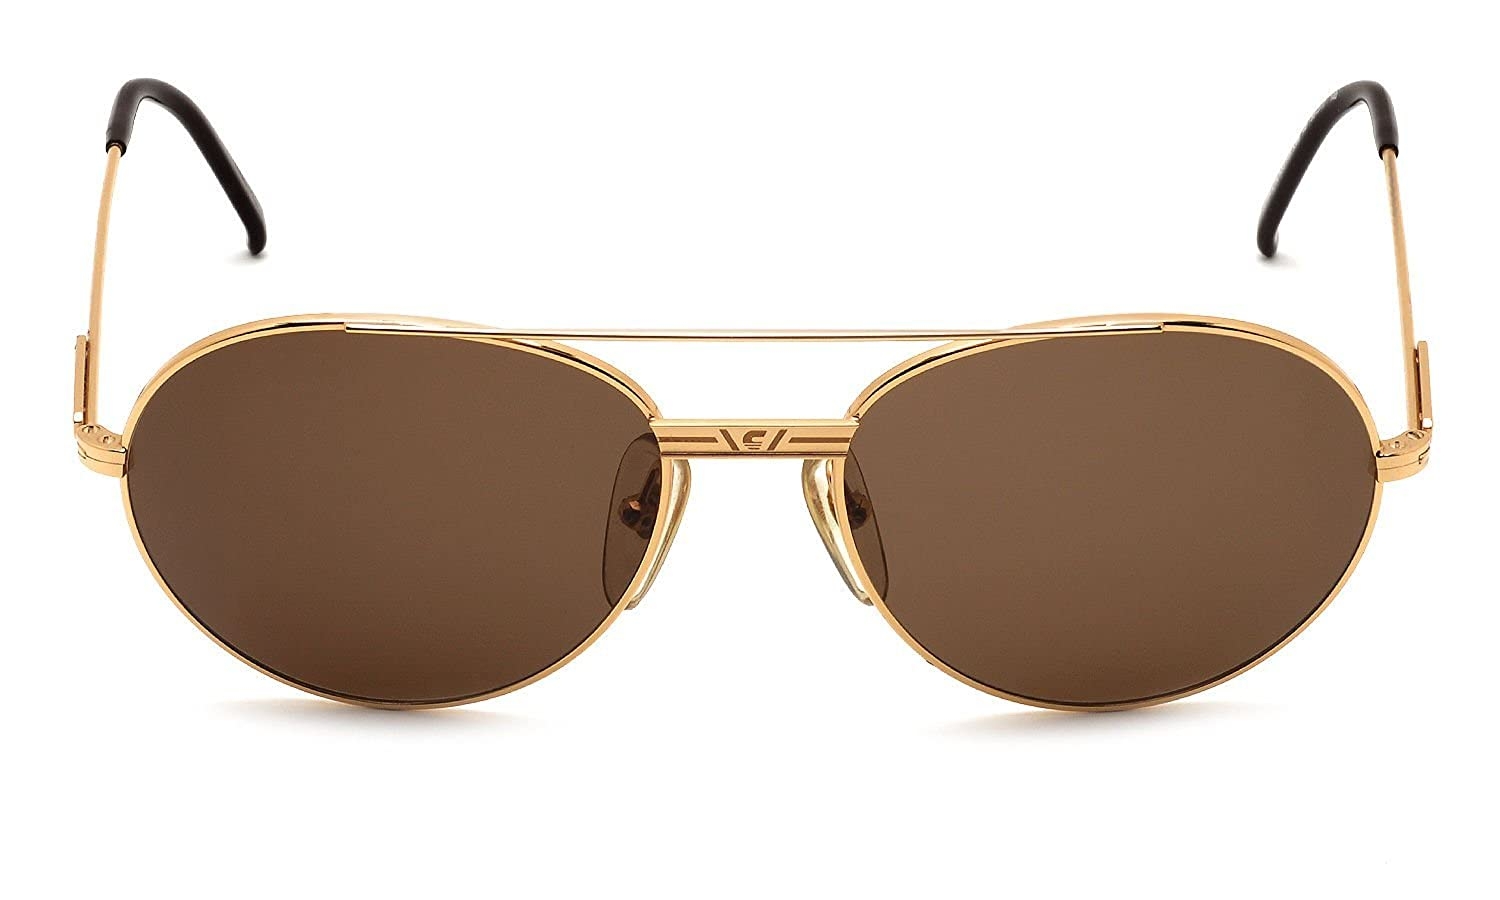 a723fb3ab2 Carrera Sunglasses 5386 40 Gold 55-17-140 Made in Austria  Amazon.ca   Clothing   Accessories